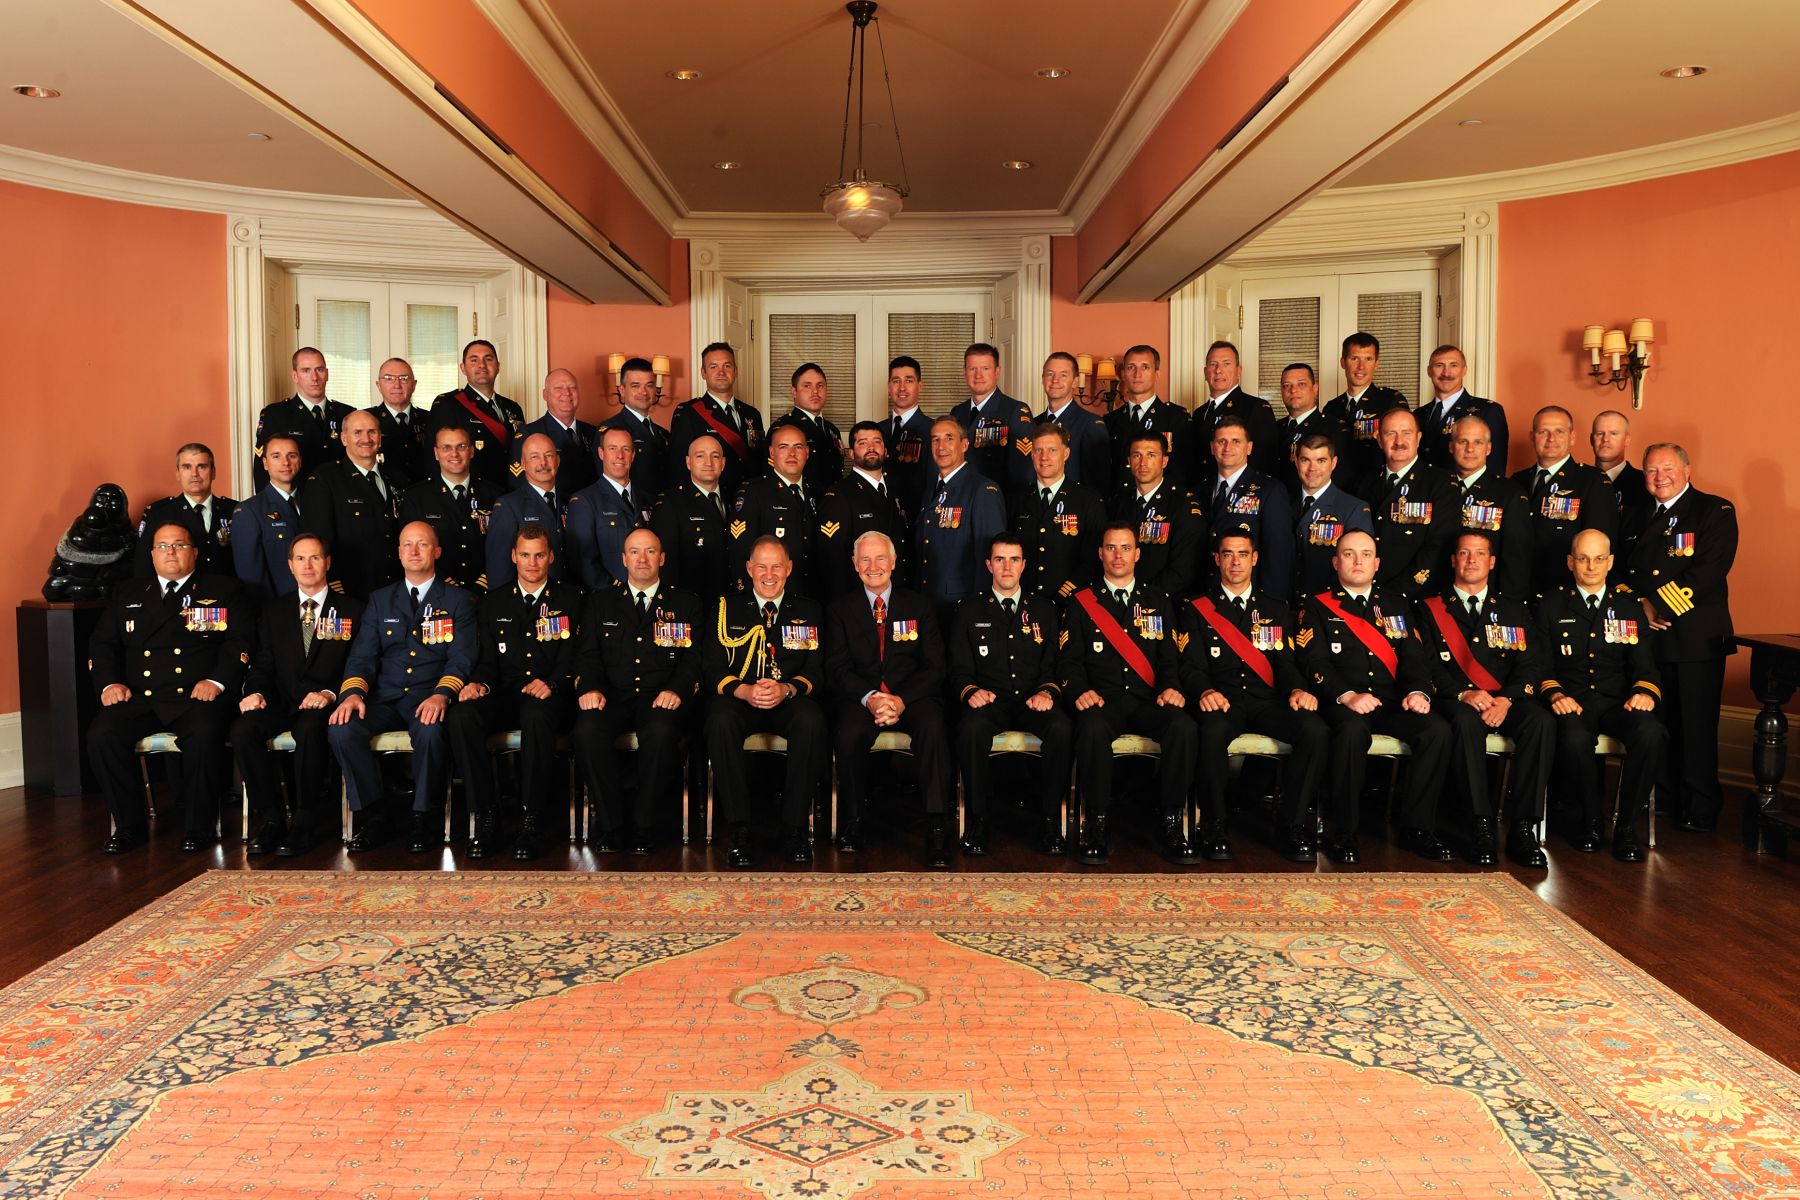 His Excellency and General Natynczyk are pictured with the 45 recipients who were presented with Military Valour and Meritorious Service Decorations.